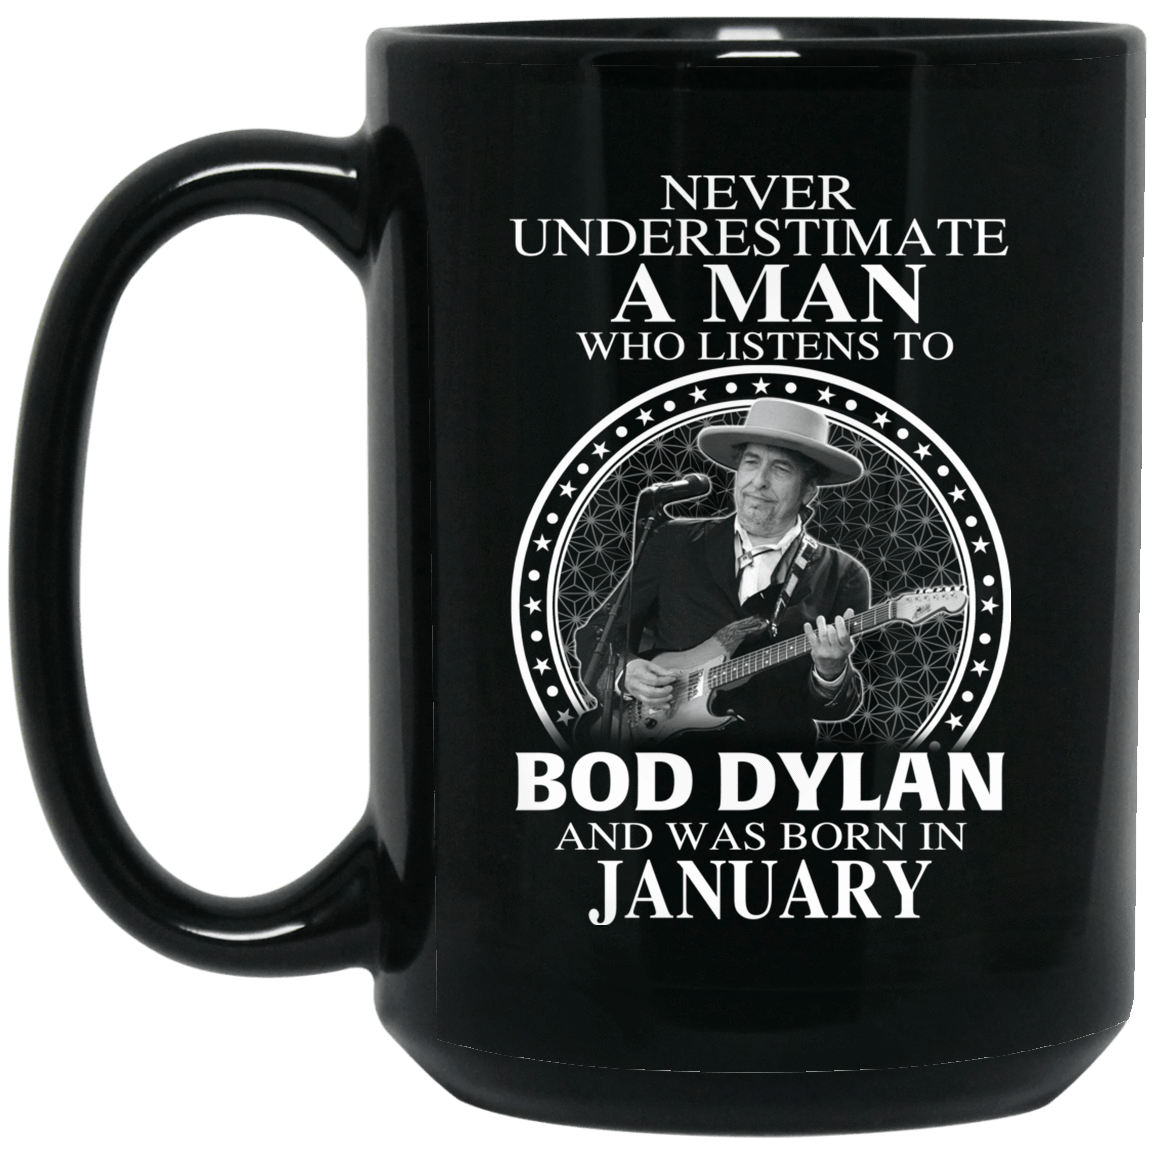 A Man Who Listens To Bob Dylan And Was Born In January Mug 1066-10182-76153608-49311 - Tee Ript